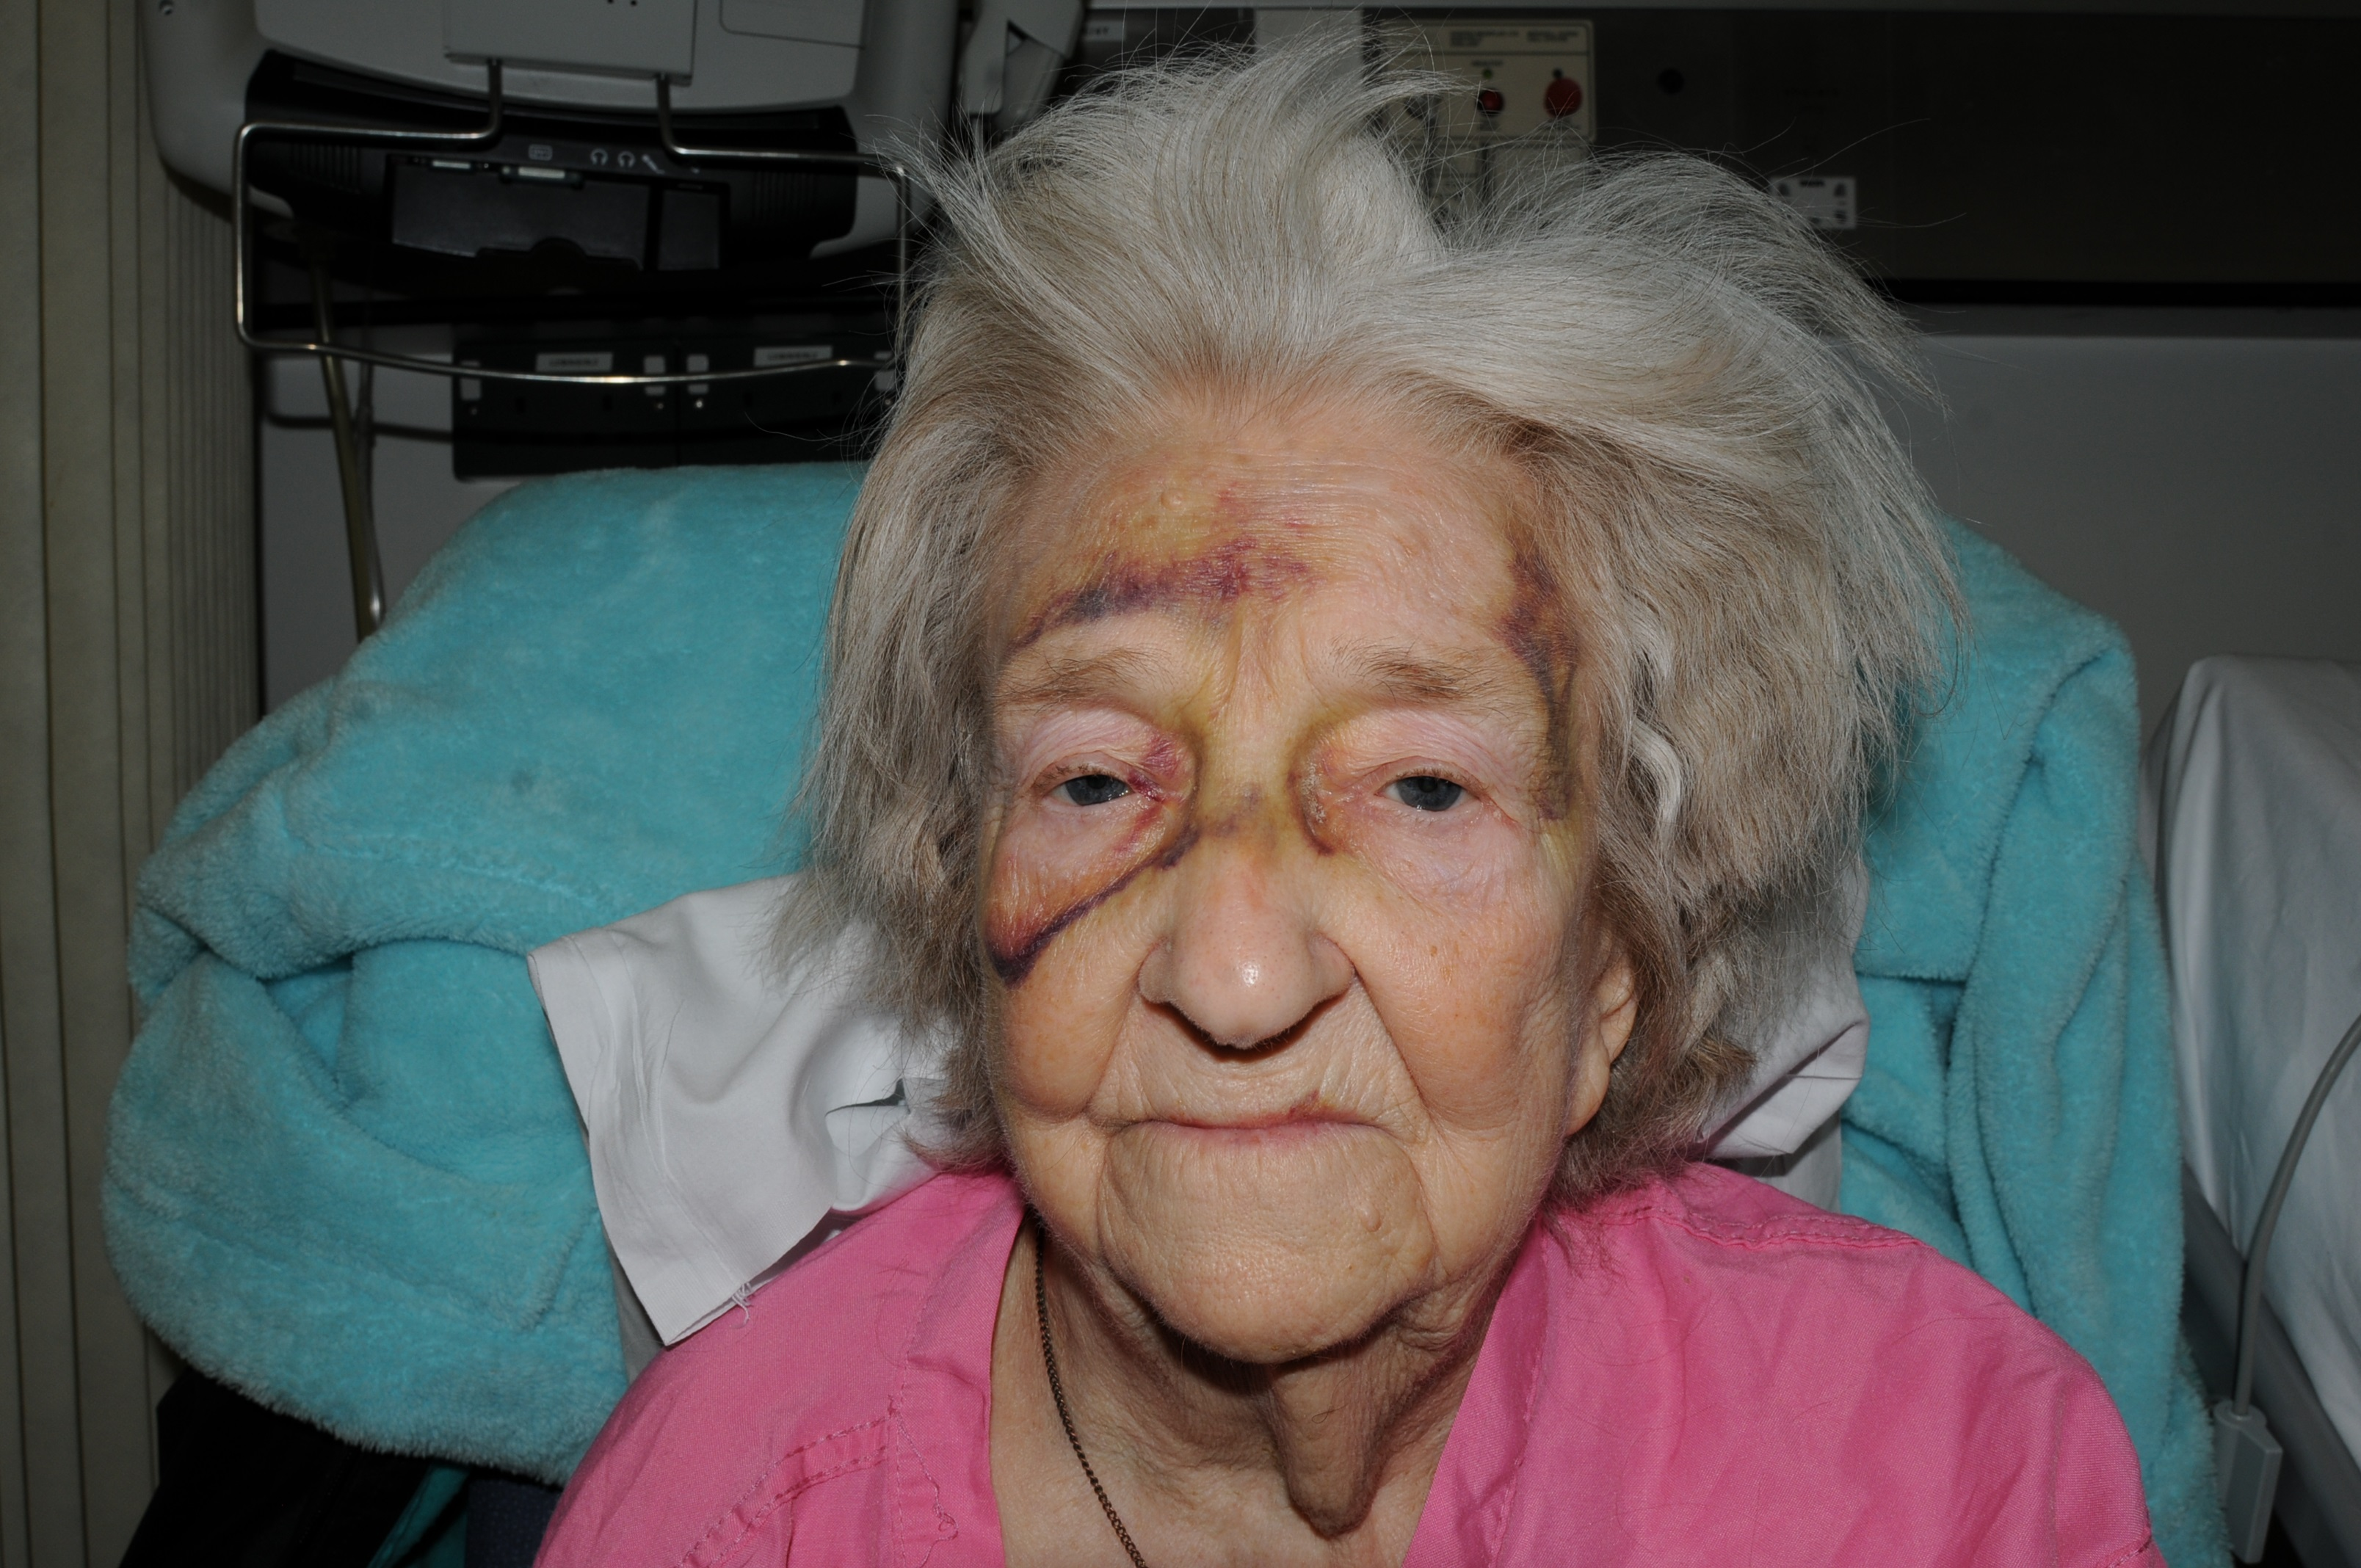 Police investigating the murder of an elderly woman from Stretford have arrested a man